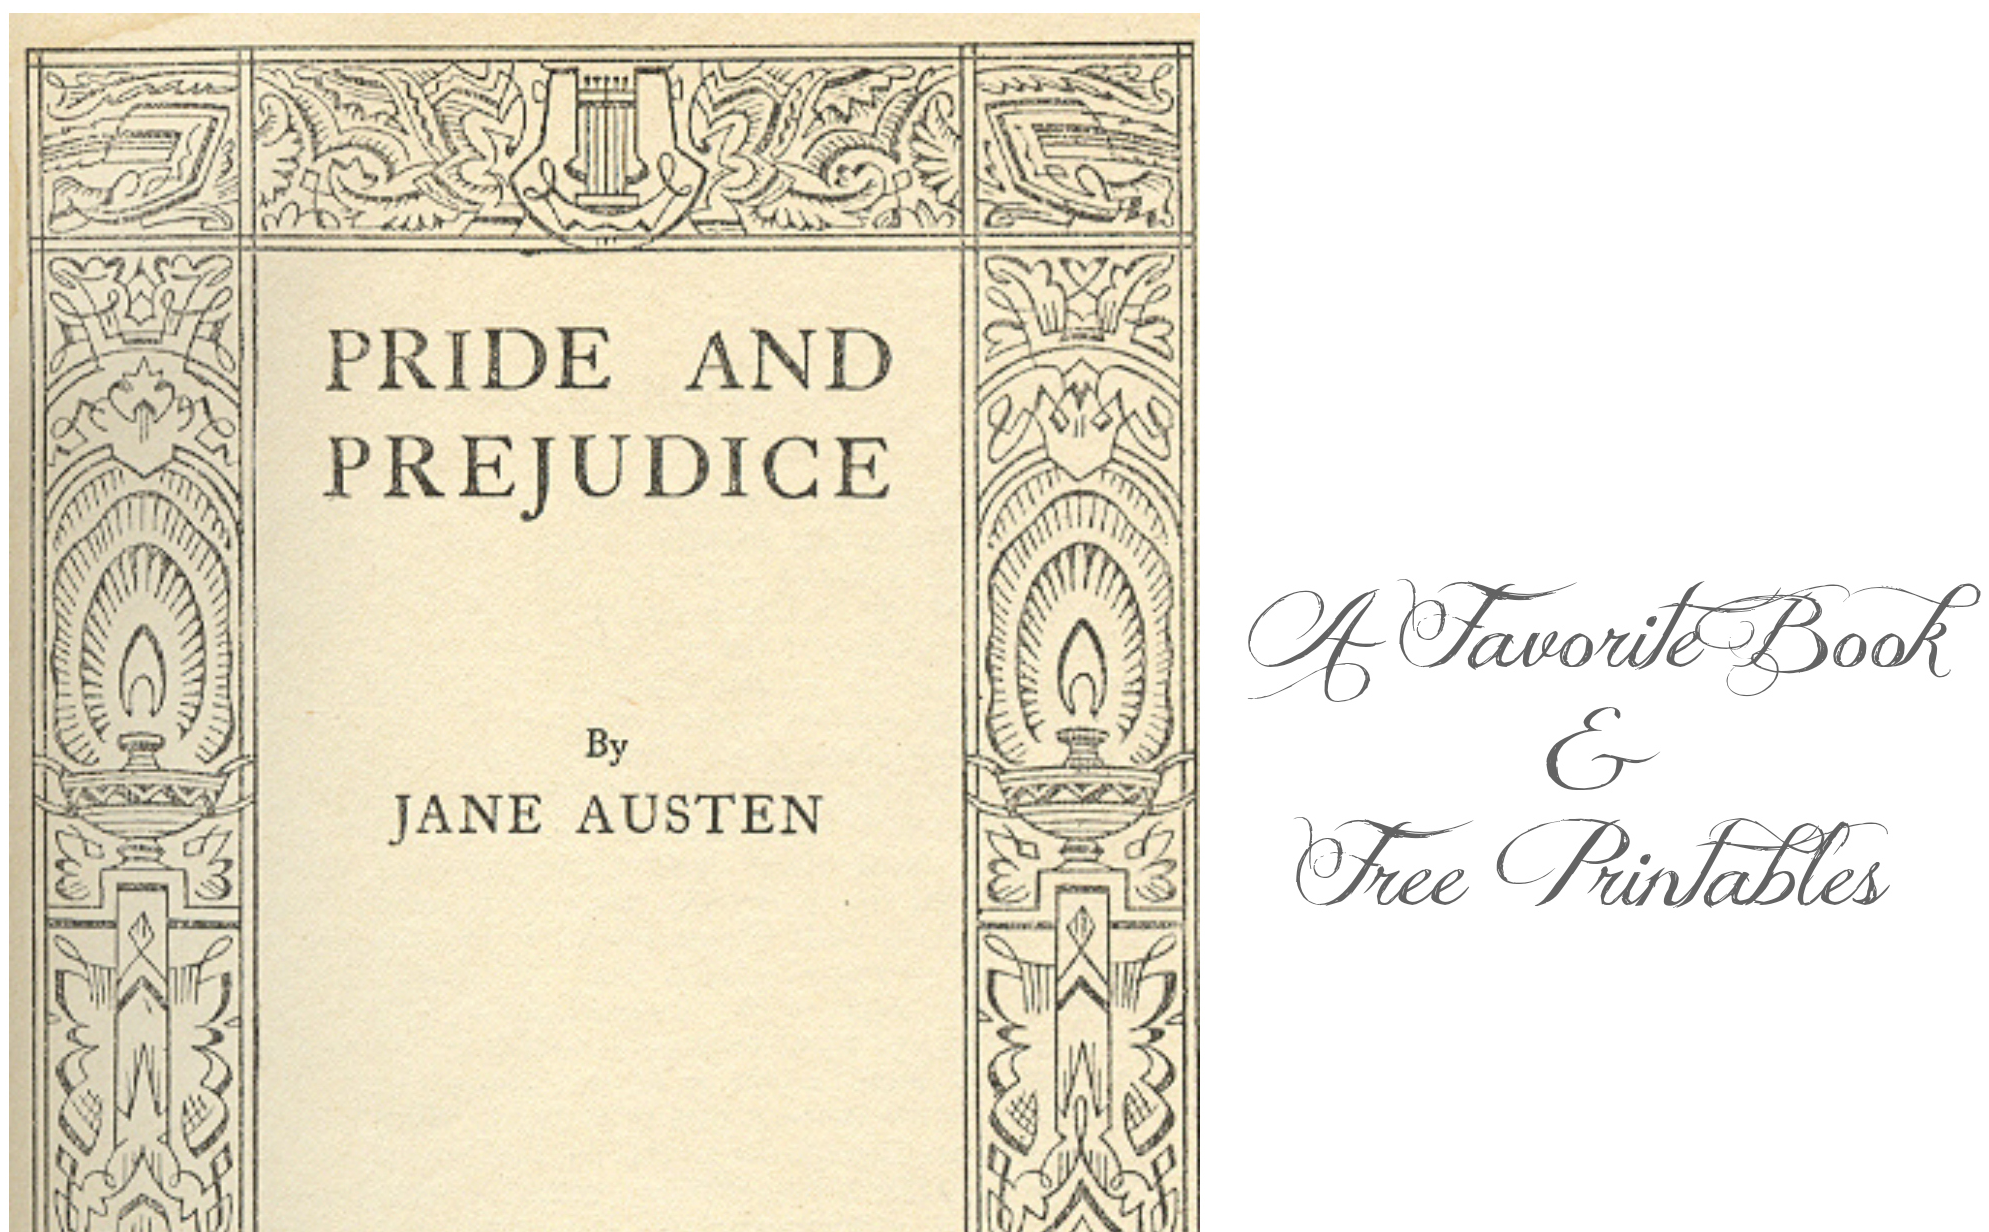 pride and prejudice book analysis This one-page guide includes a plot summary and brief analysis of pride and prejudice by pride and prejudice summary the book begins with the.